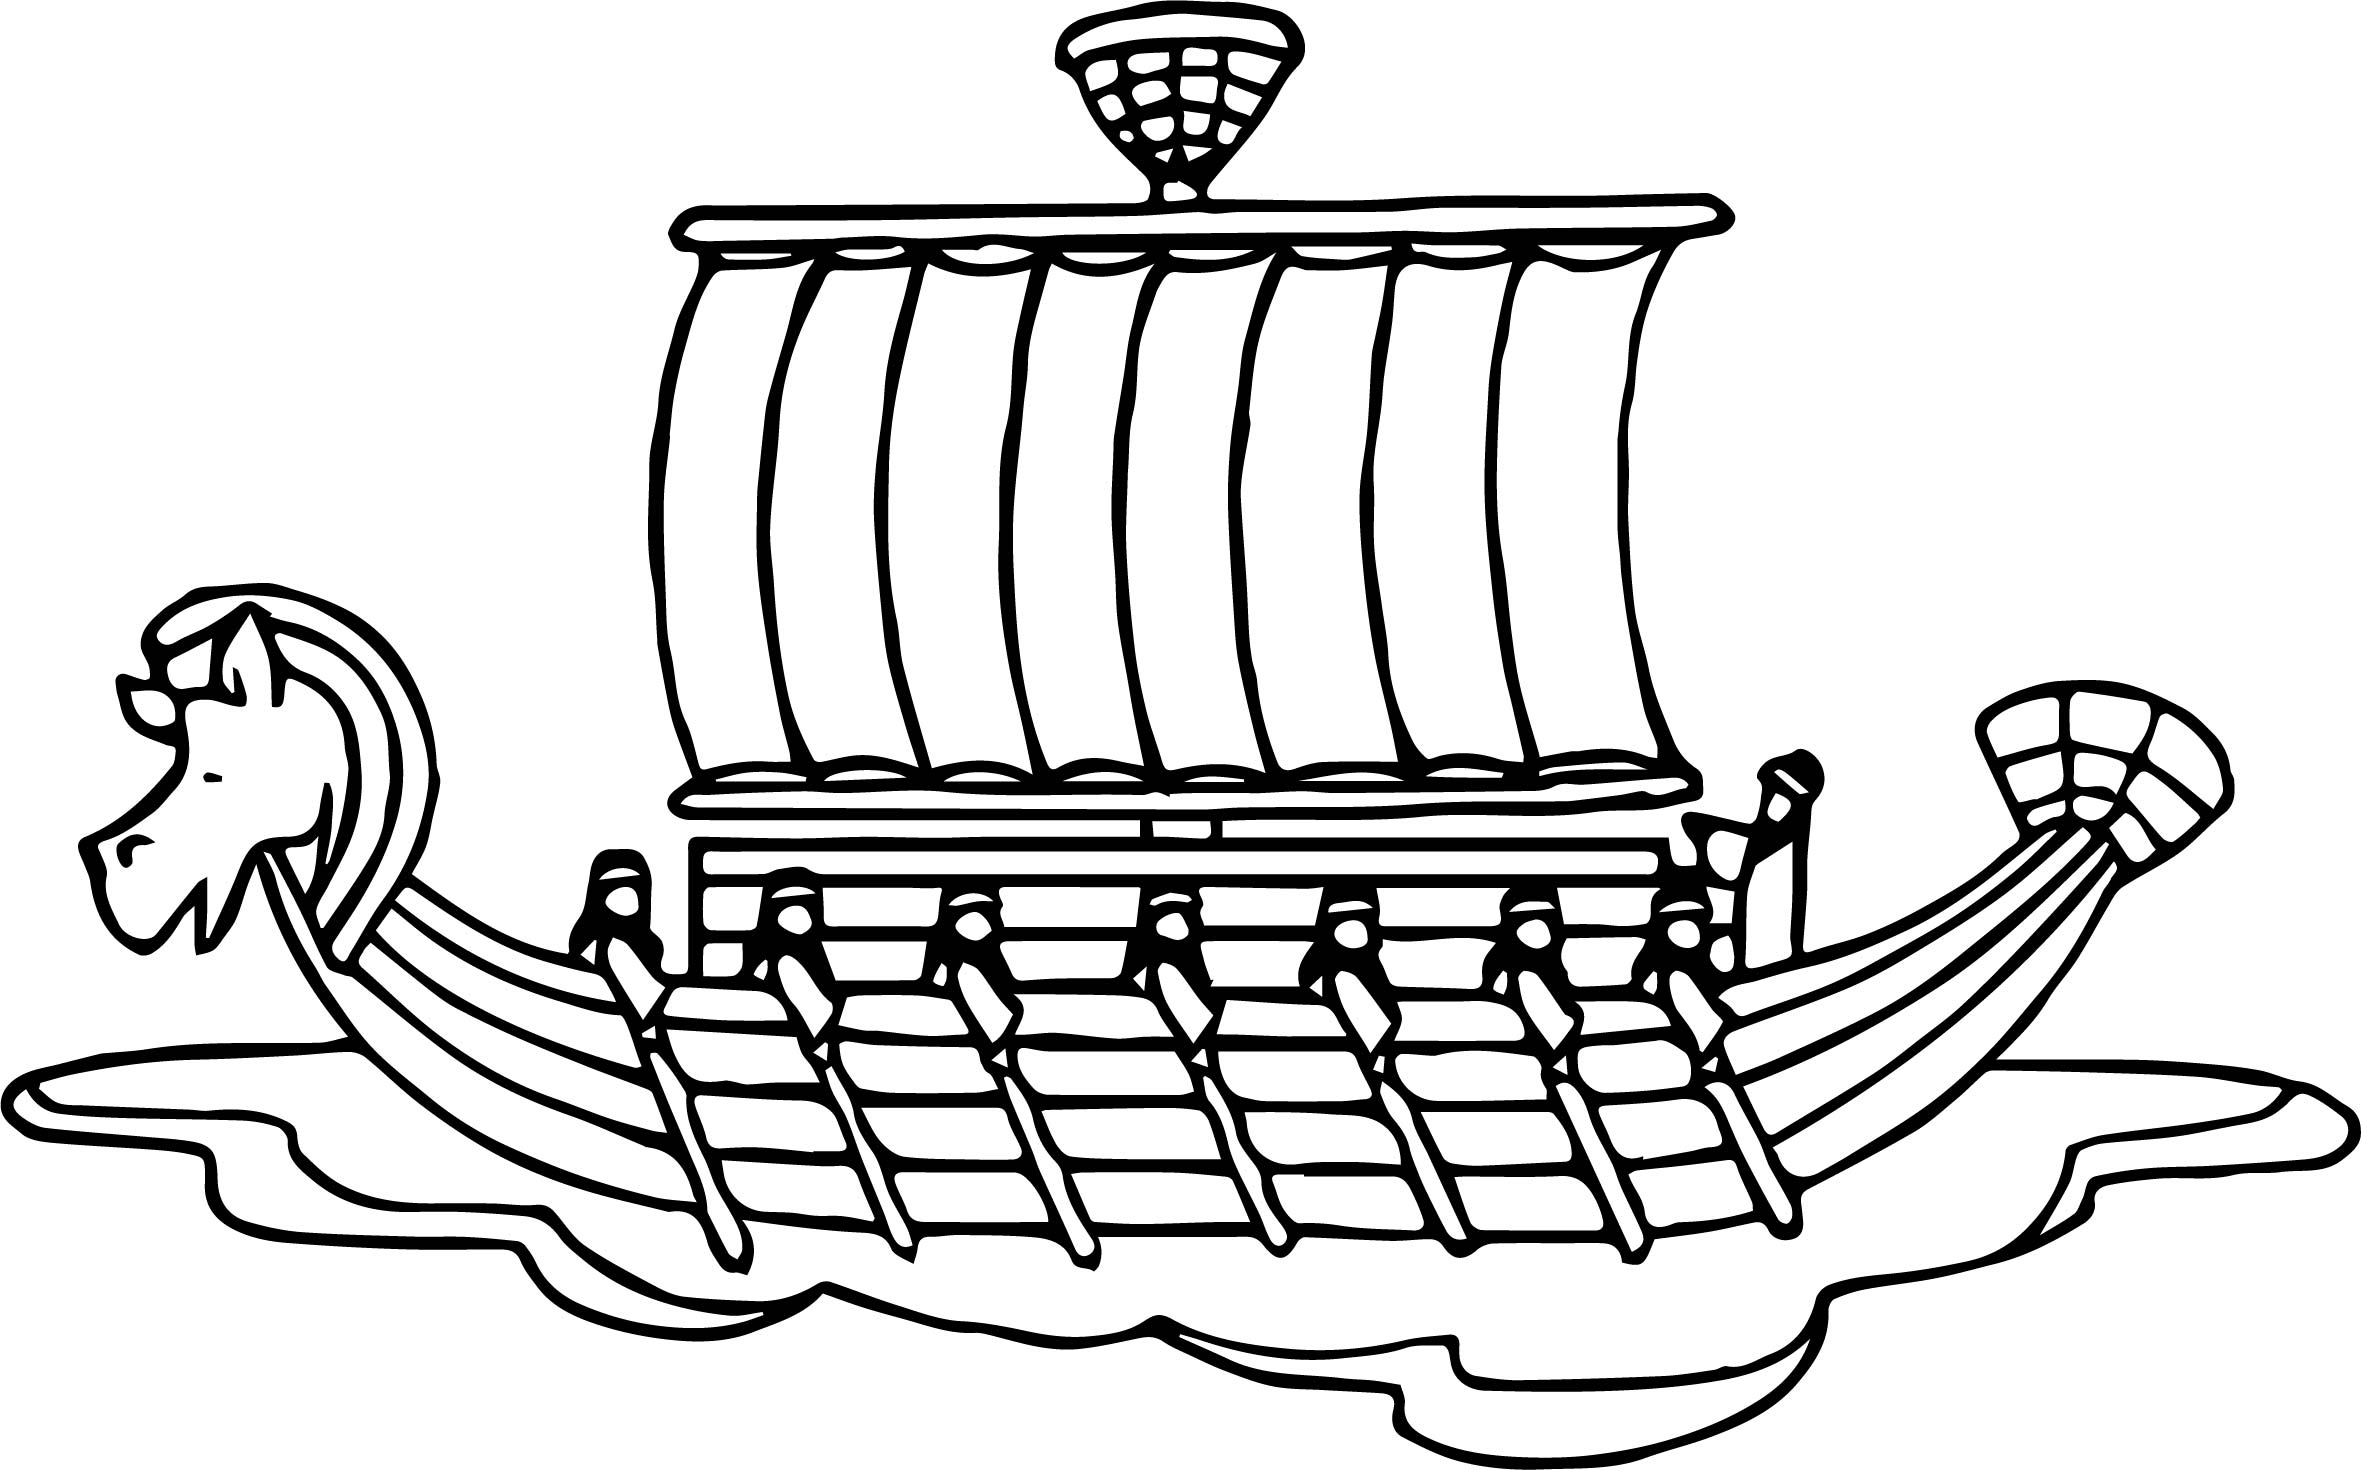 ancient egypt coloring pages - ancient egypt ship coloring page